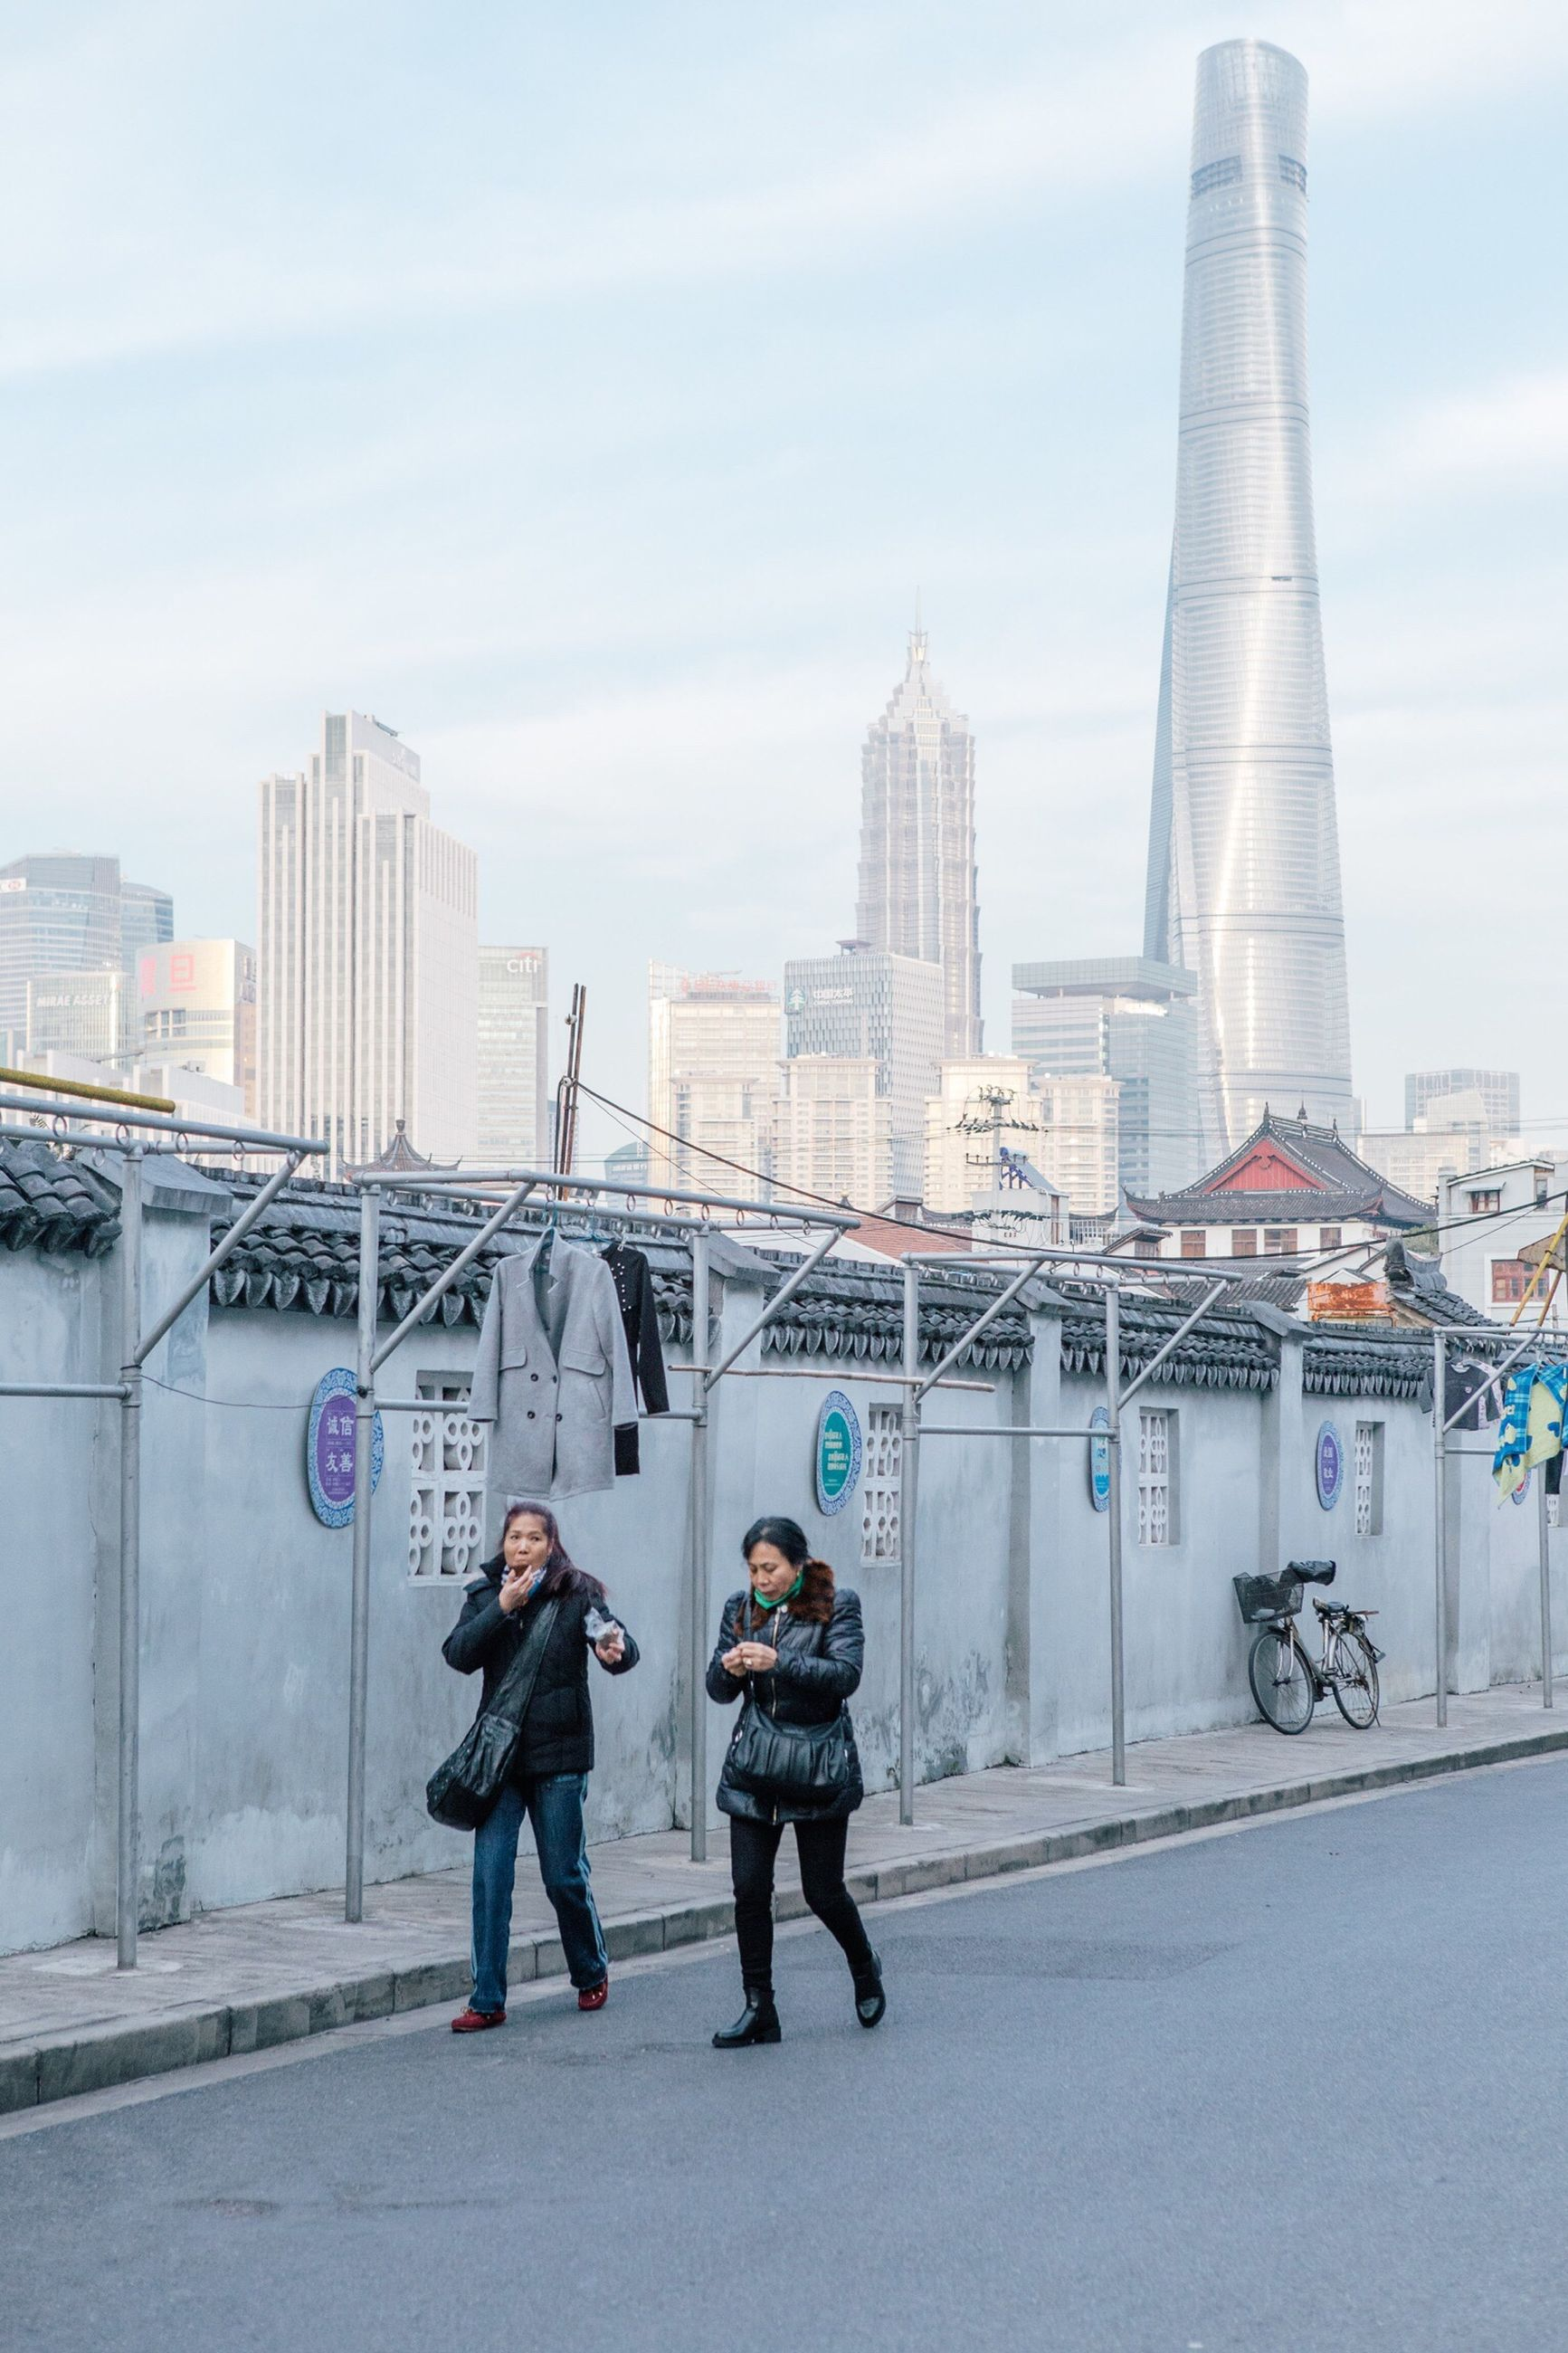 architecture, built structure, building exterior, city, full length, men, lifestyles, leisure activity, person, rear view, skyscraper, tower, sky, bridge - man made structure, casual clothing, city life, togetherness, day, suspension bridge, outdoors, tall - high, tourism, famous place